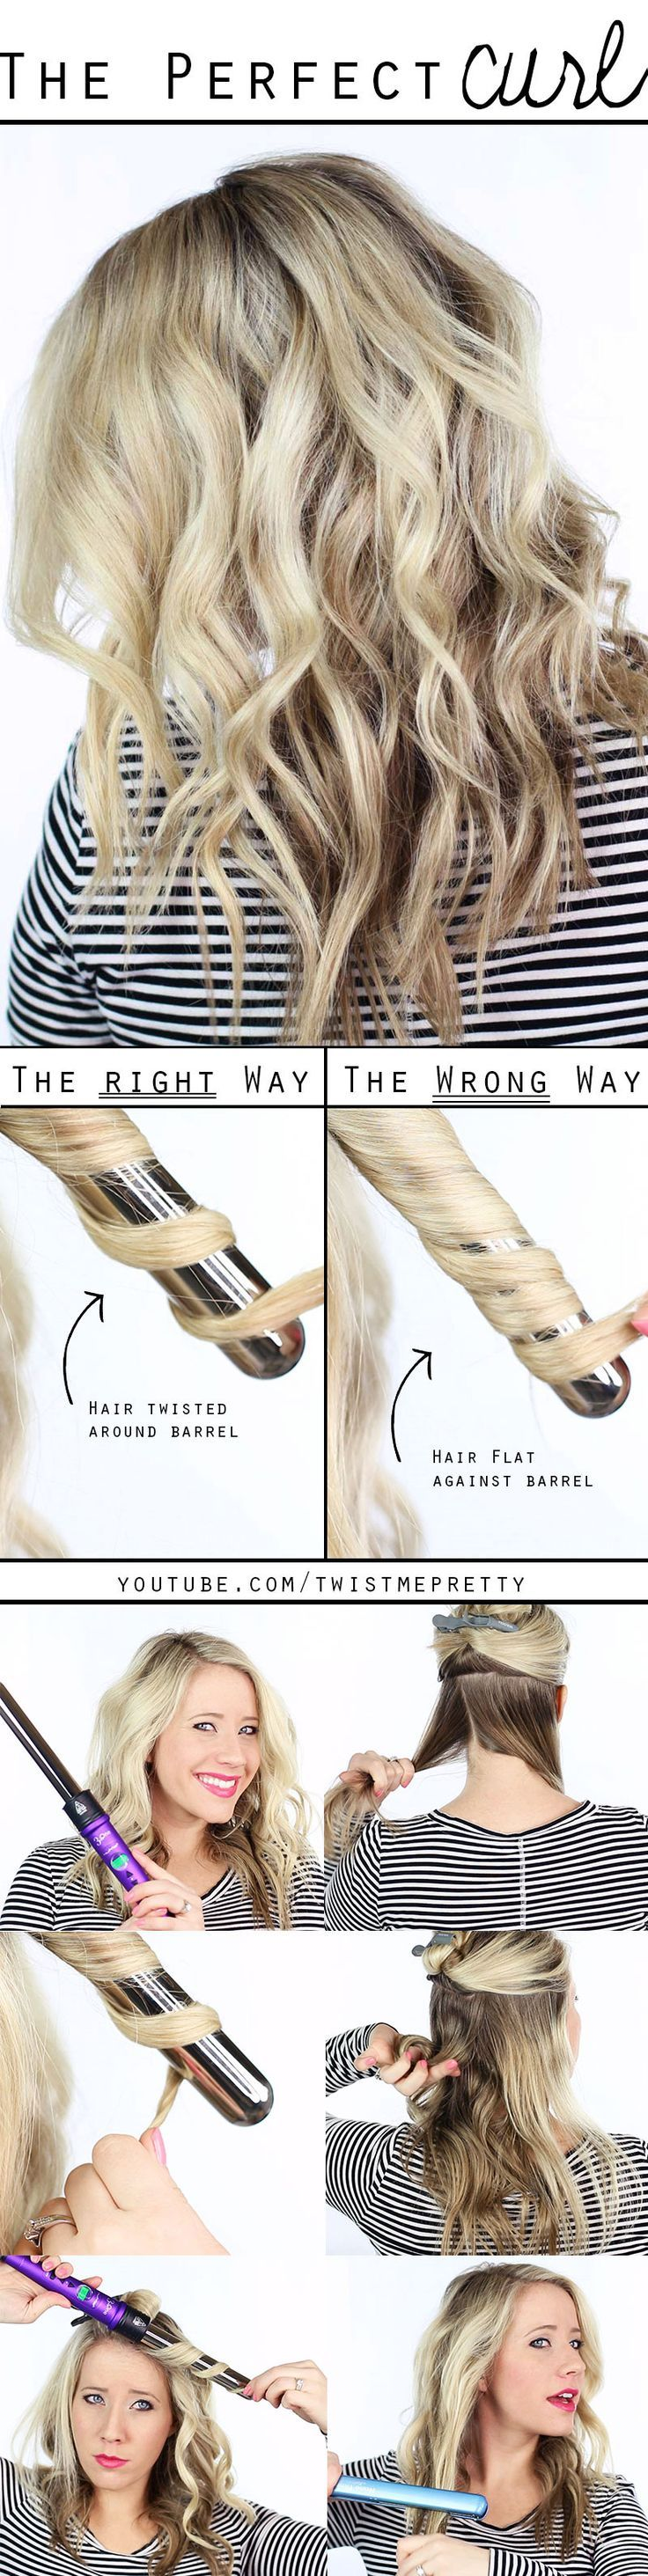 The perfect curl -- a must see video with heat styling advice, how to wrap the c...